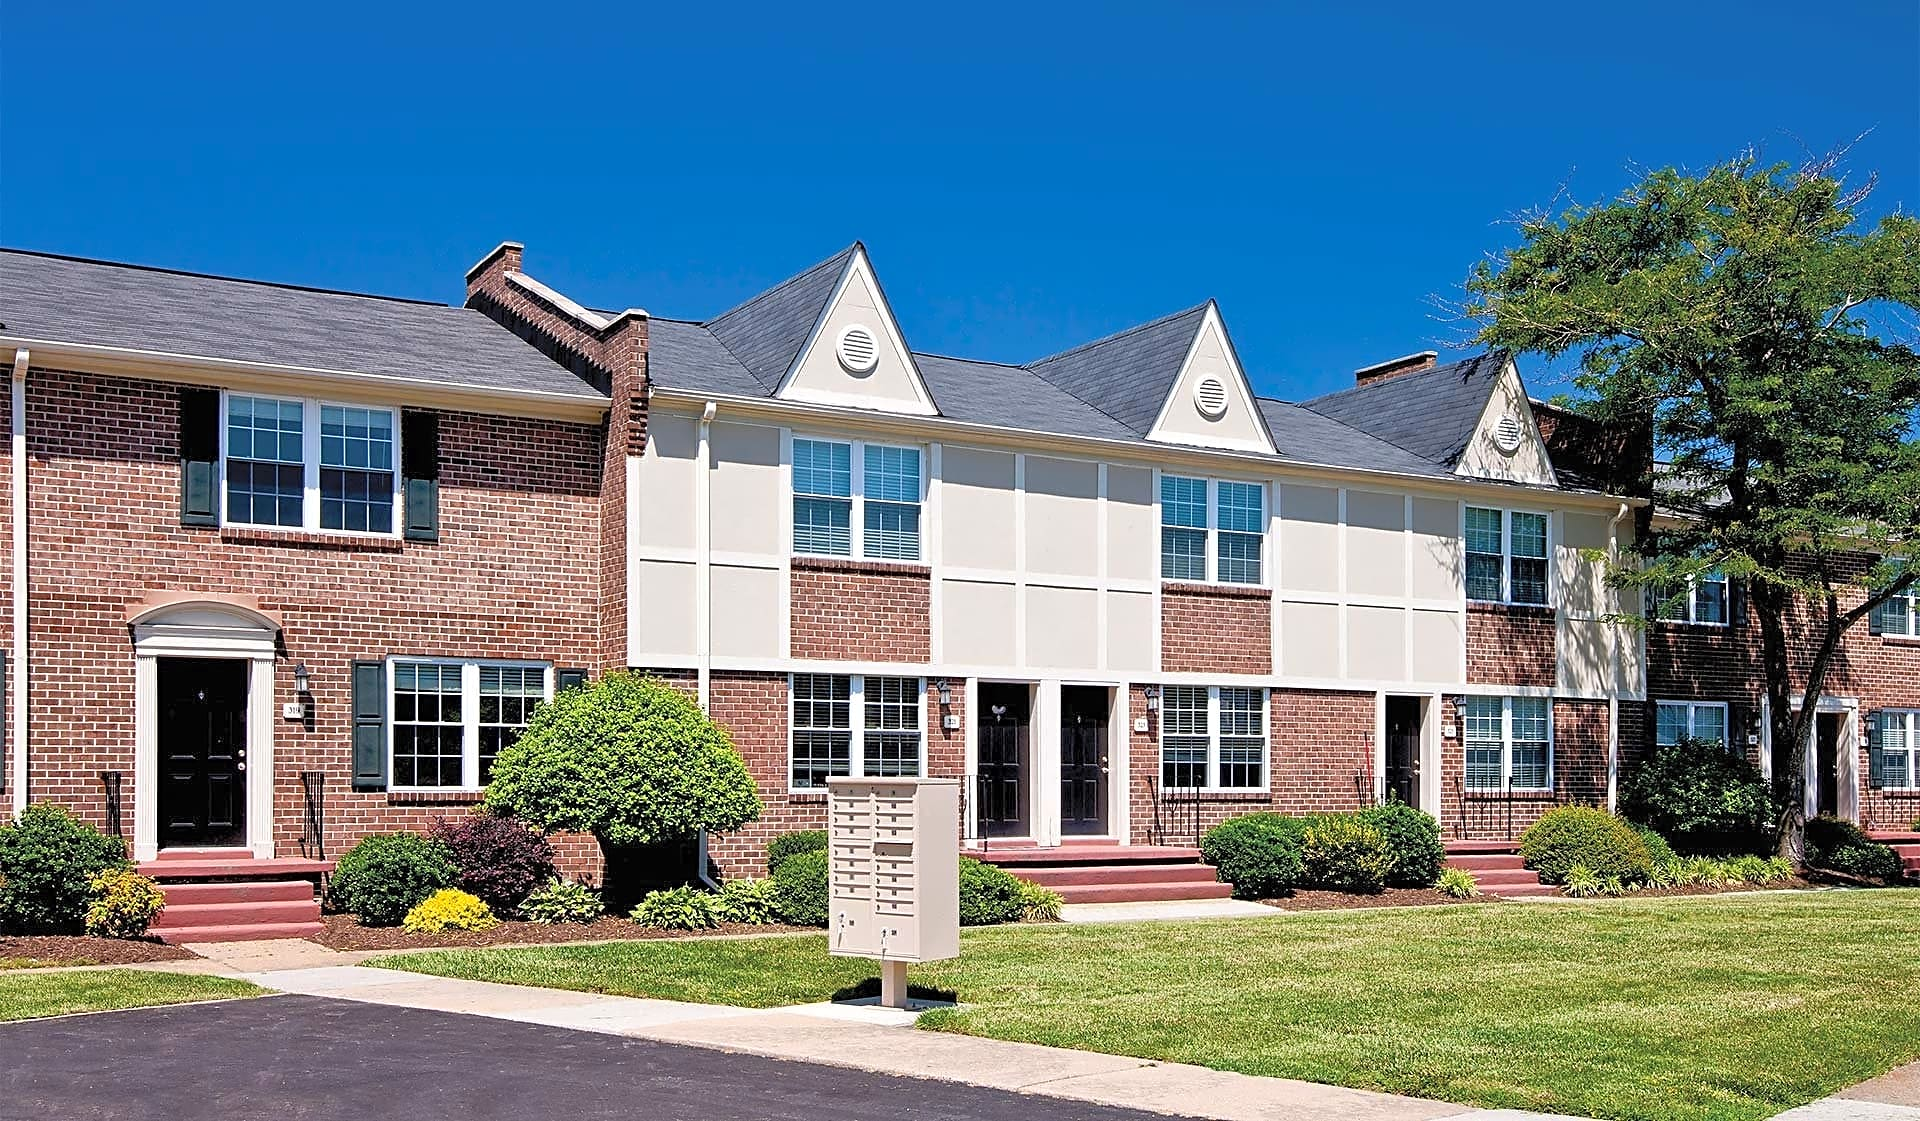 Townhome-style apartments in a wooded neighborhood